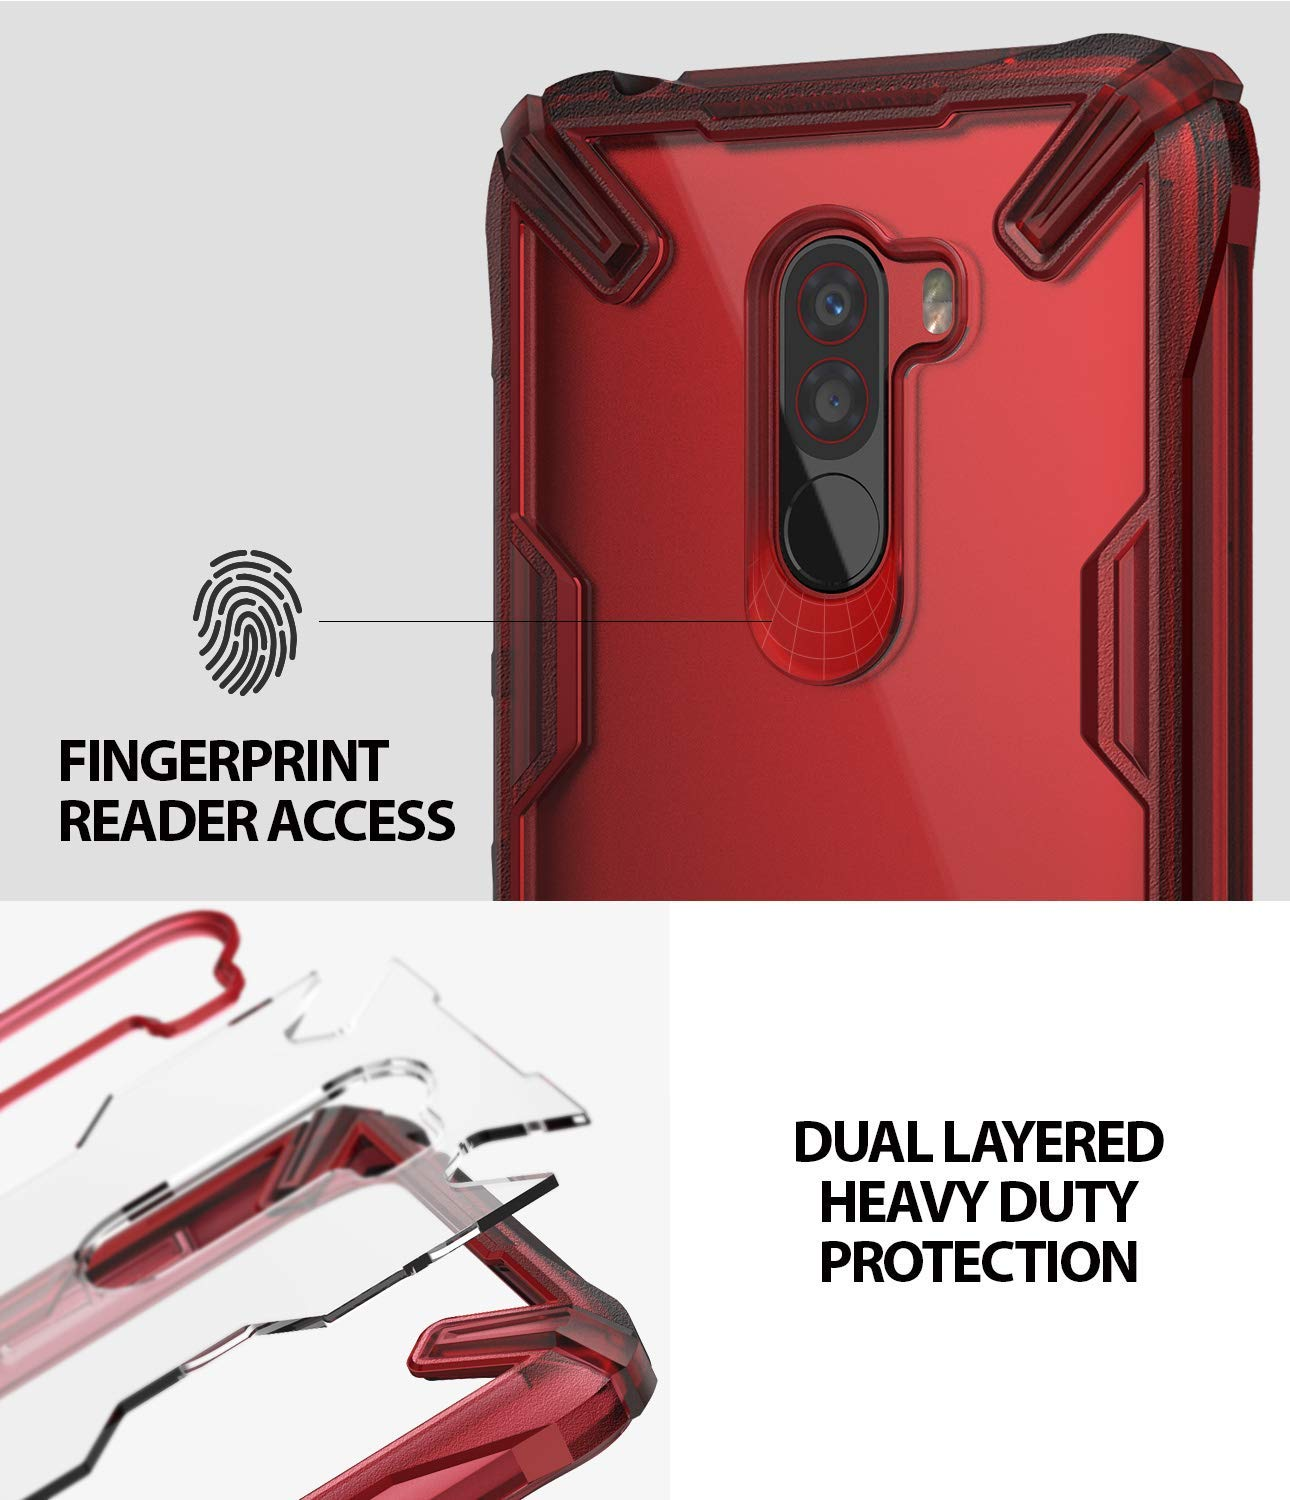 fingerprint reader access with dual layered heavy protection